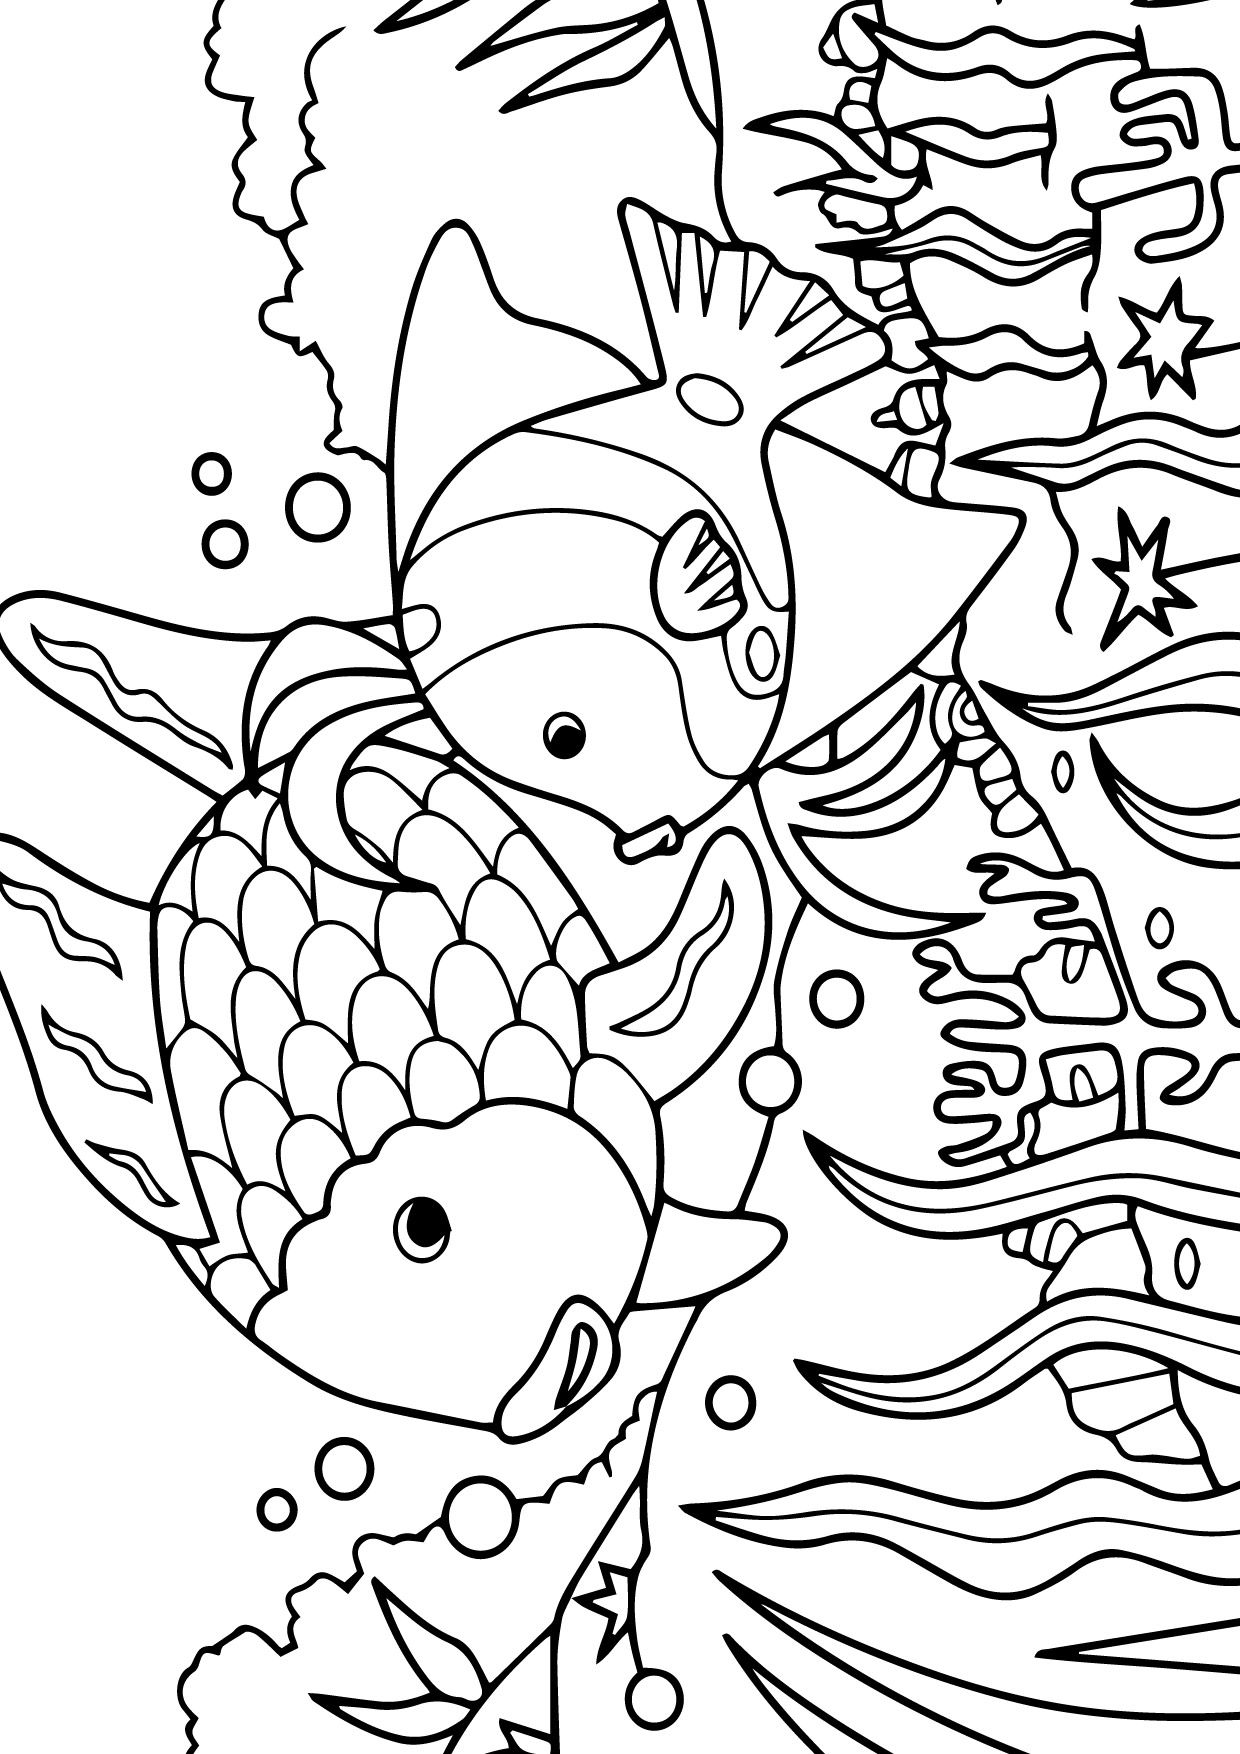 awesome Coloring Page 22-09-2015_161356-01 Check more at http://www ...